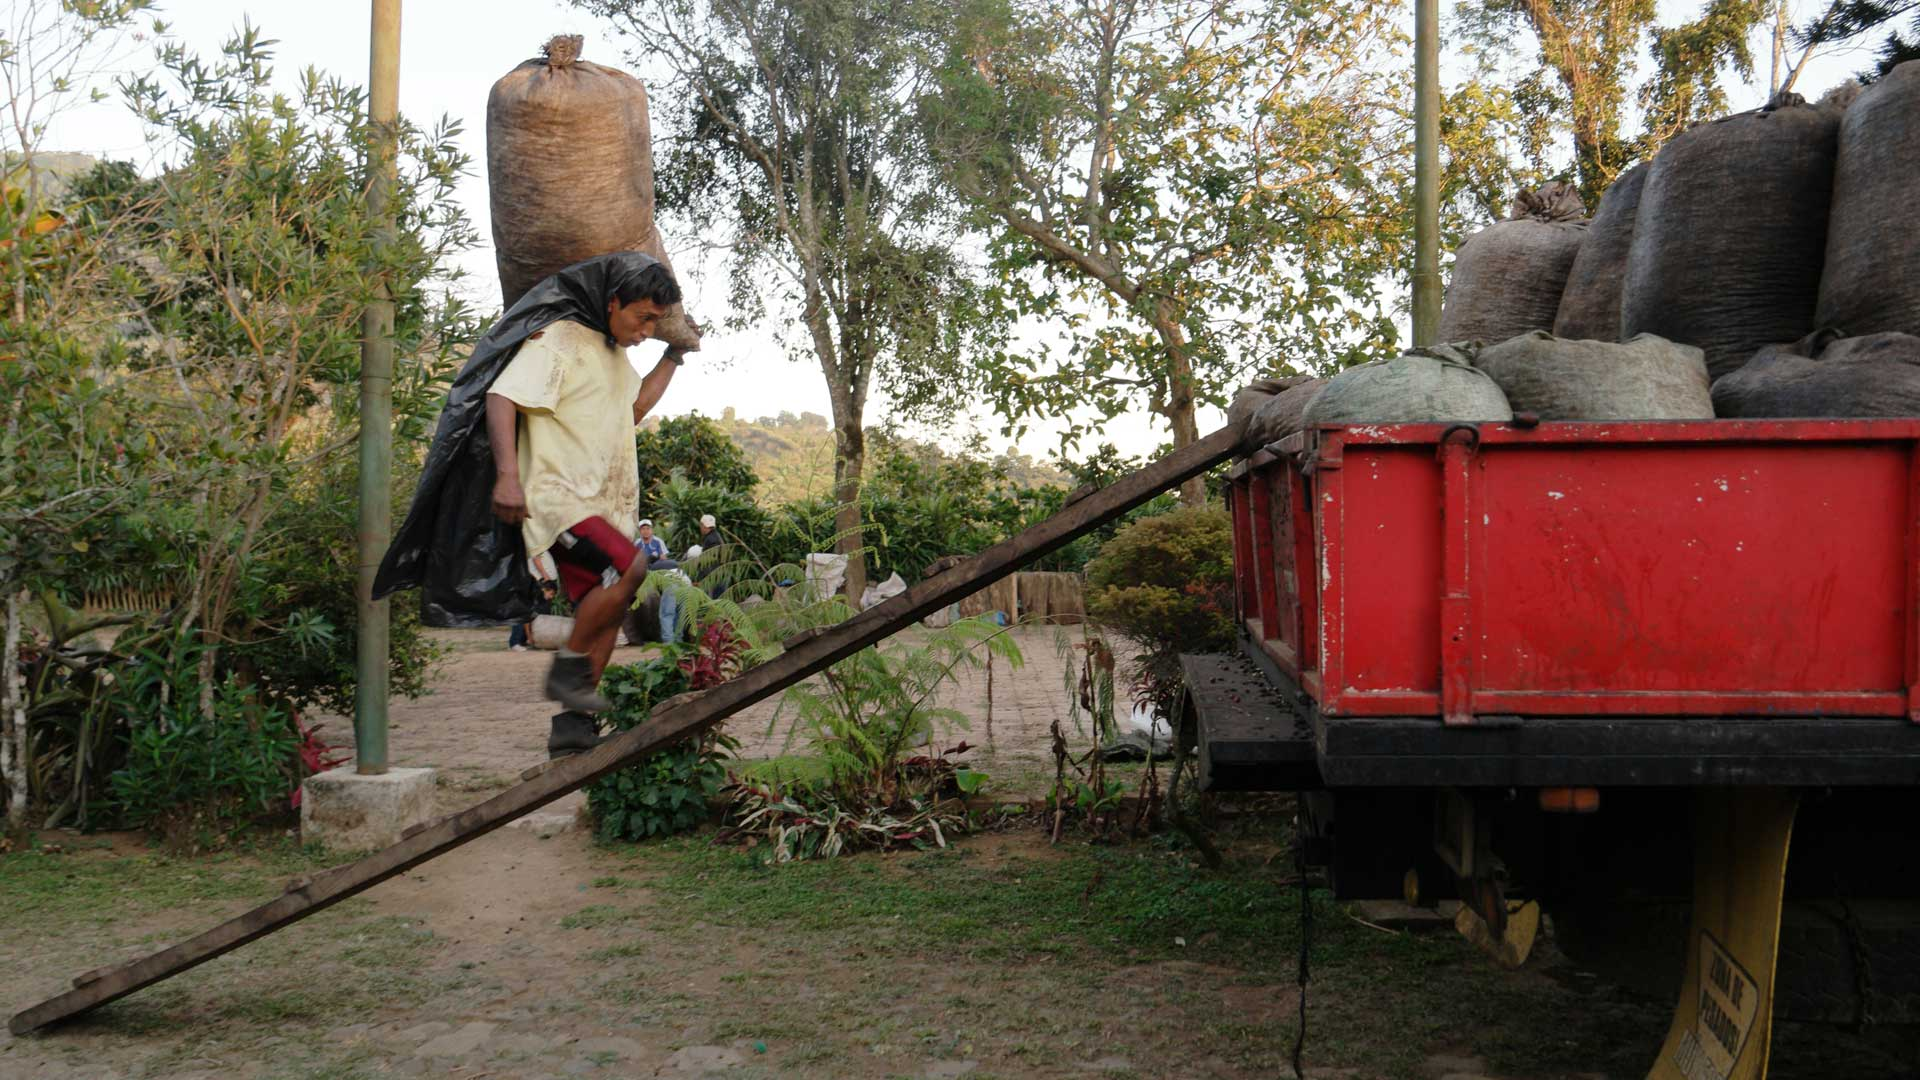 An image of a man loading coffee cherries onto a truck in El Salvador, one source for green coffee Caffe Ladro and Ladro Roasting source for our Wholesale Coffee Roaster